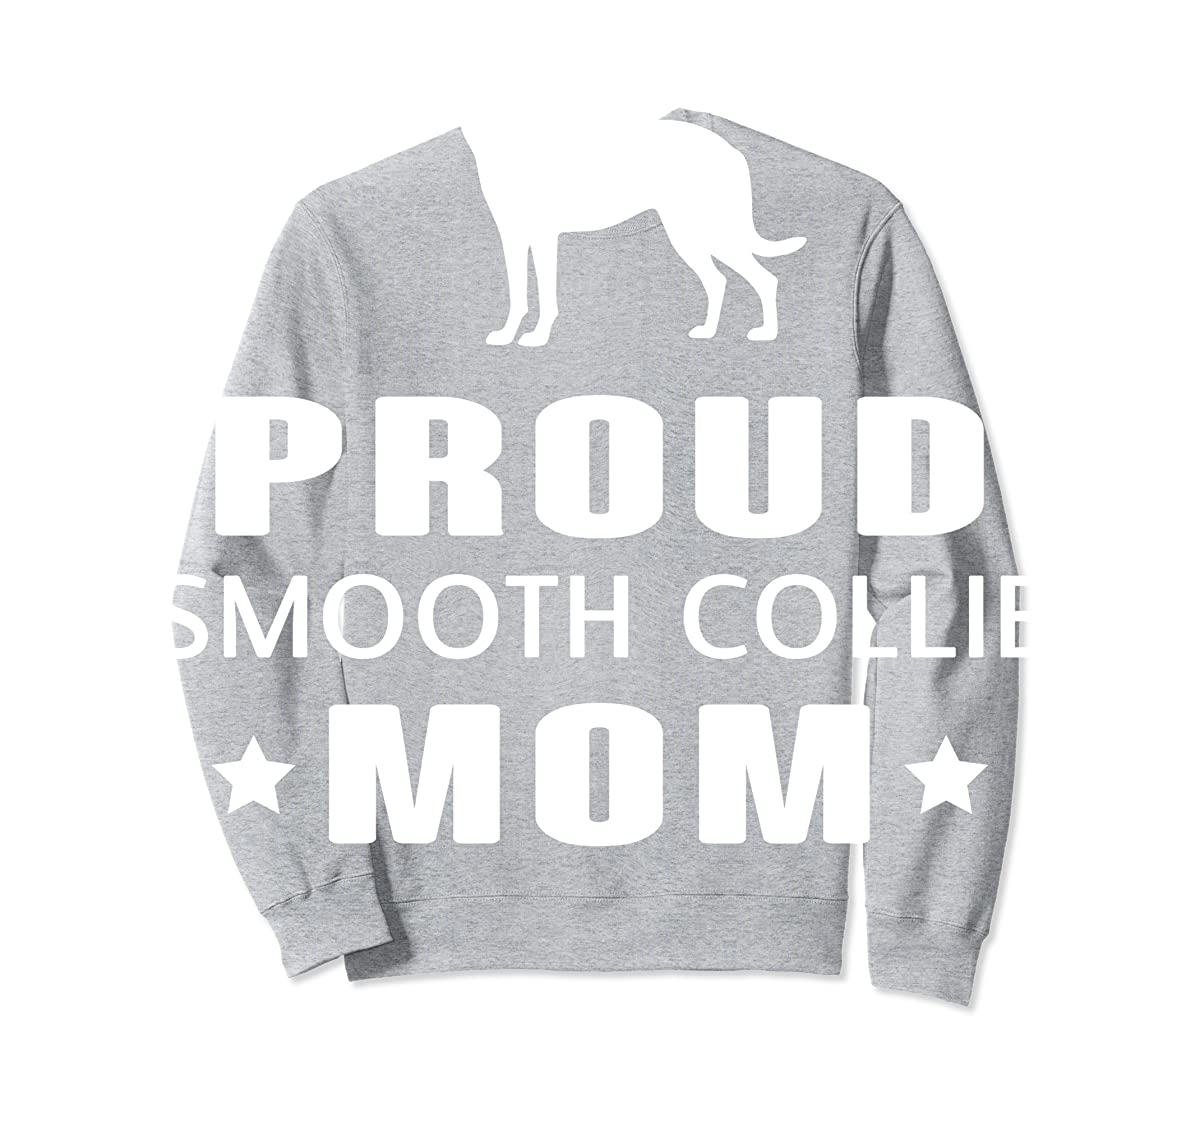 Smooth Collie Funny T-Shirts For Dog Lovers-Sweatshirt-Sport Grey